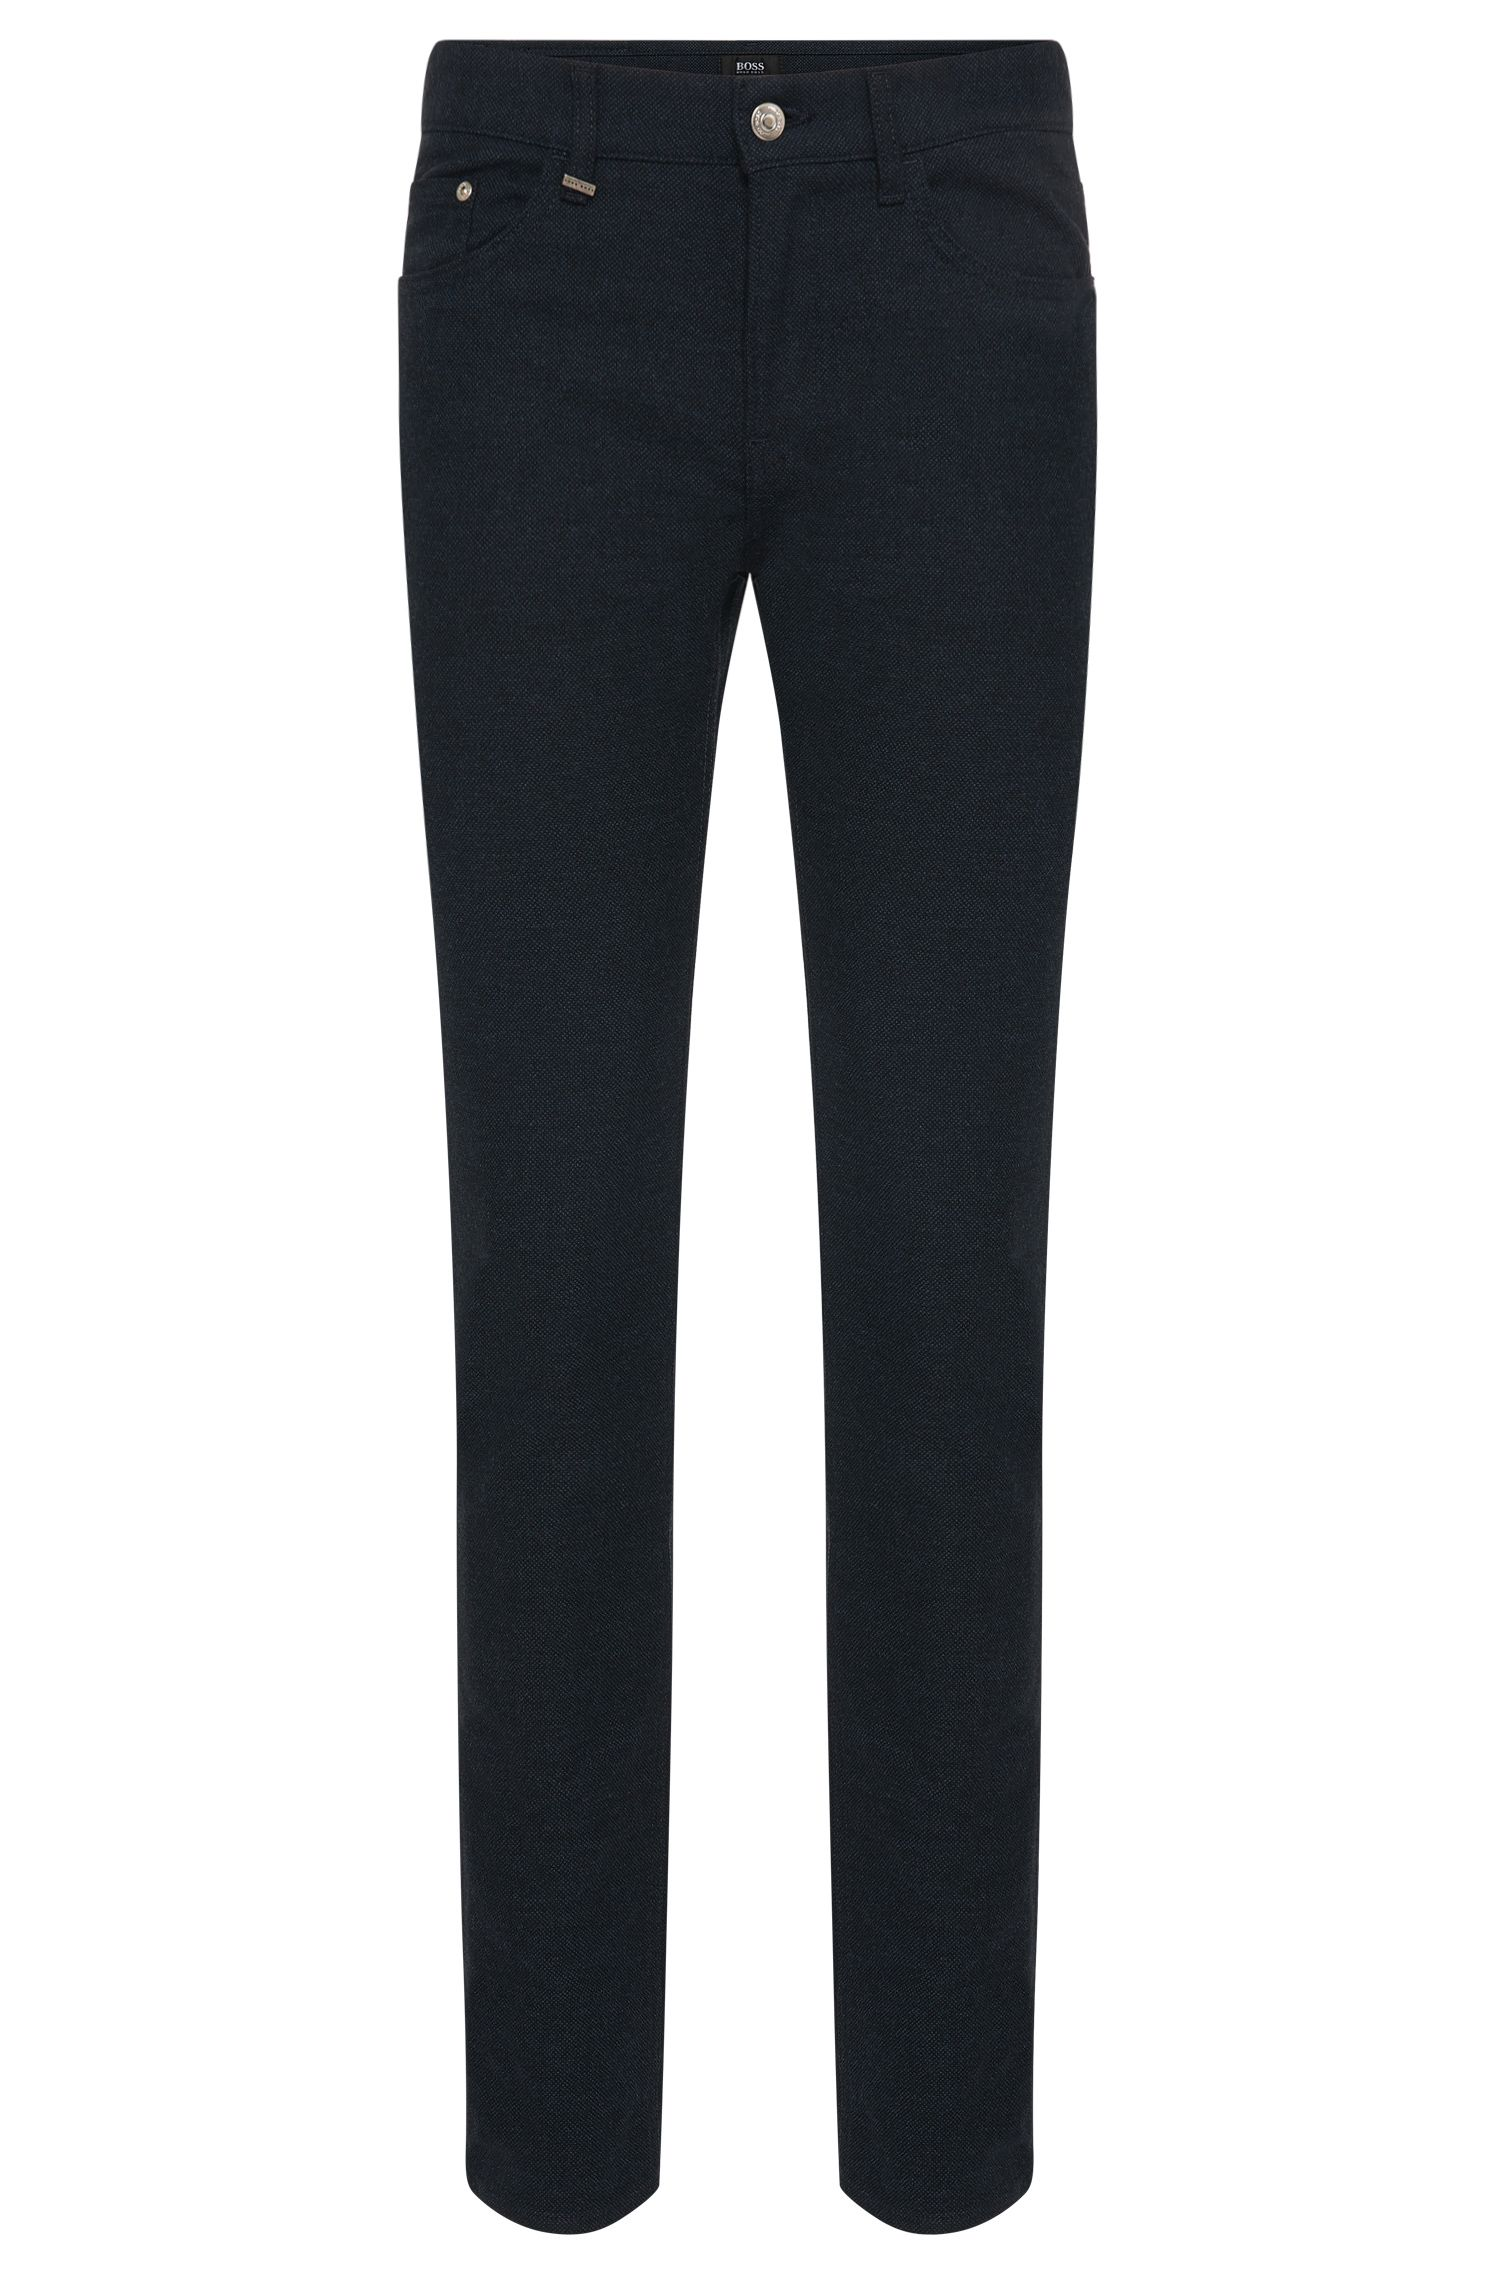 'Delaware' | Slim Fit, 13.5 oz Stretch Cotton Blend Birdseye Trousers